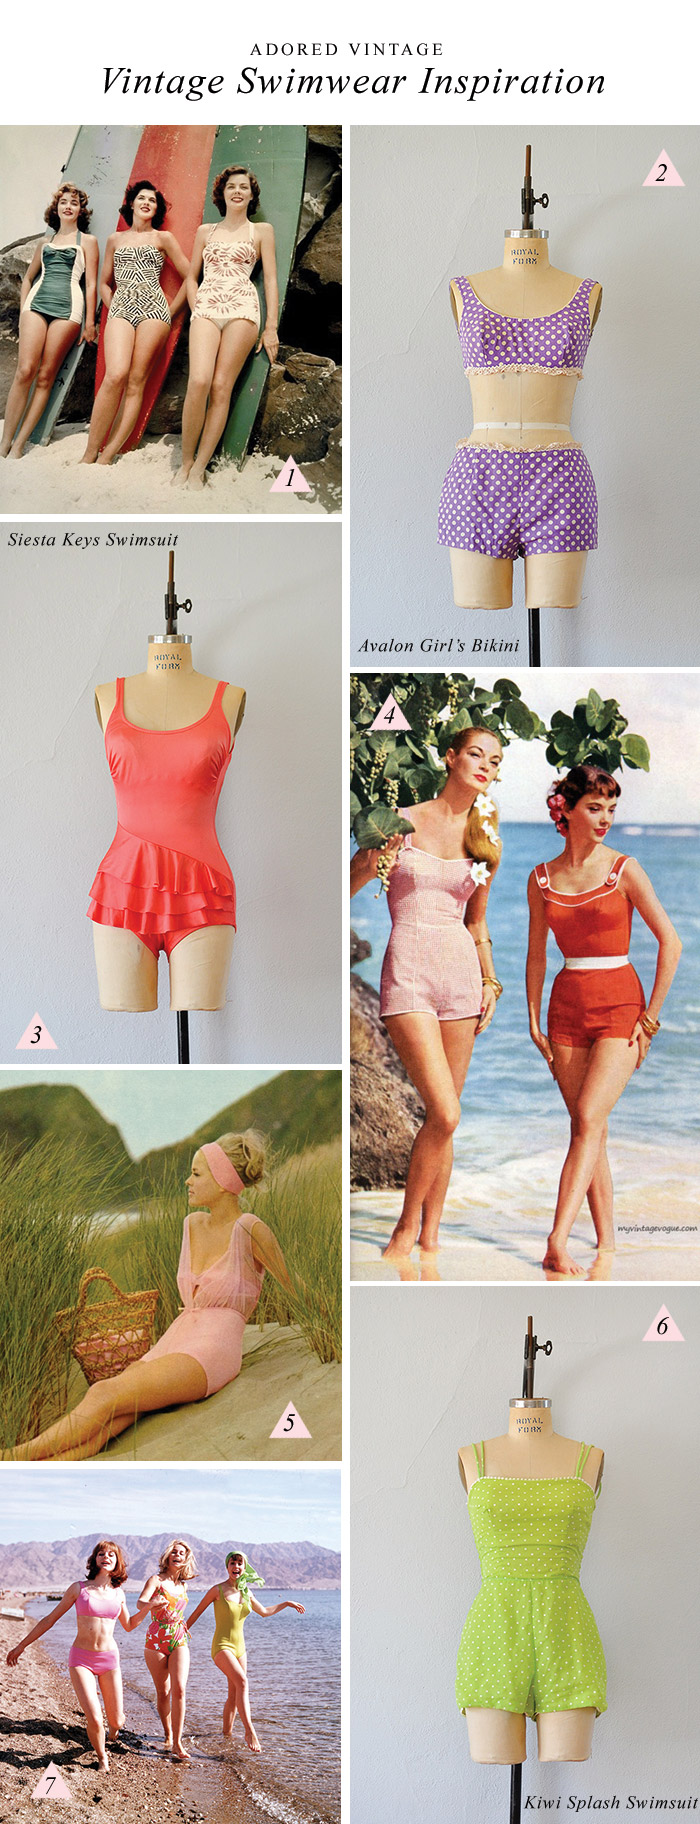 Adored-Vintage-Vintage-Swimwear-Inspiration